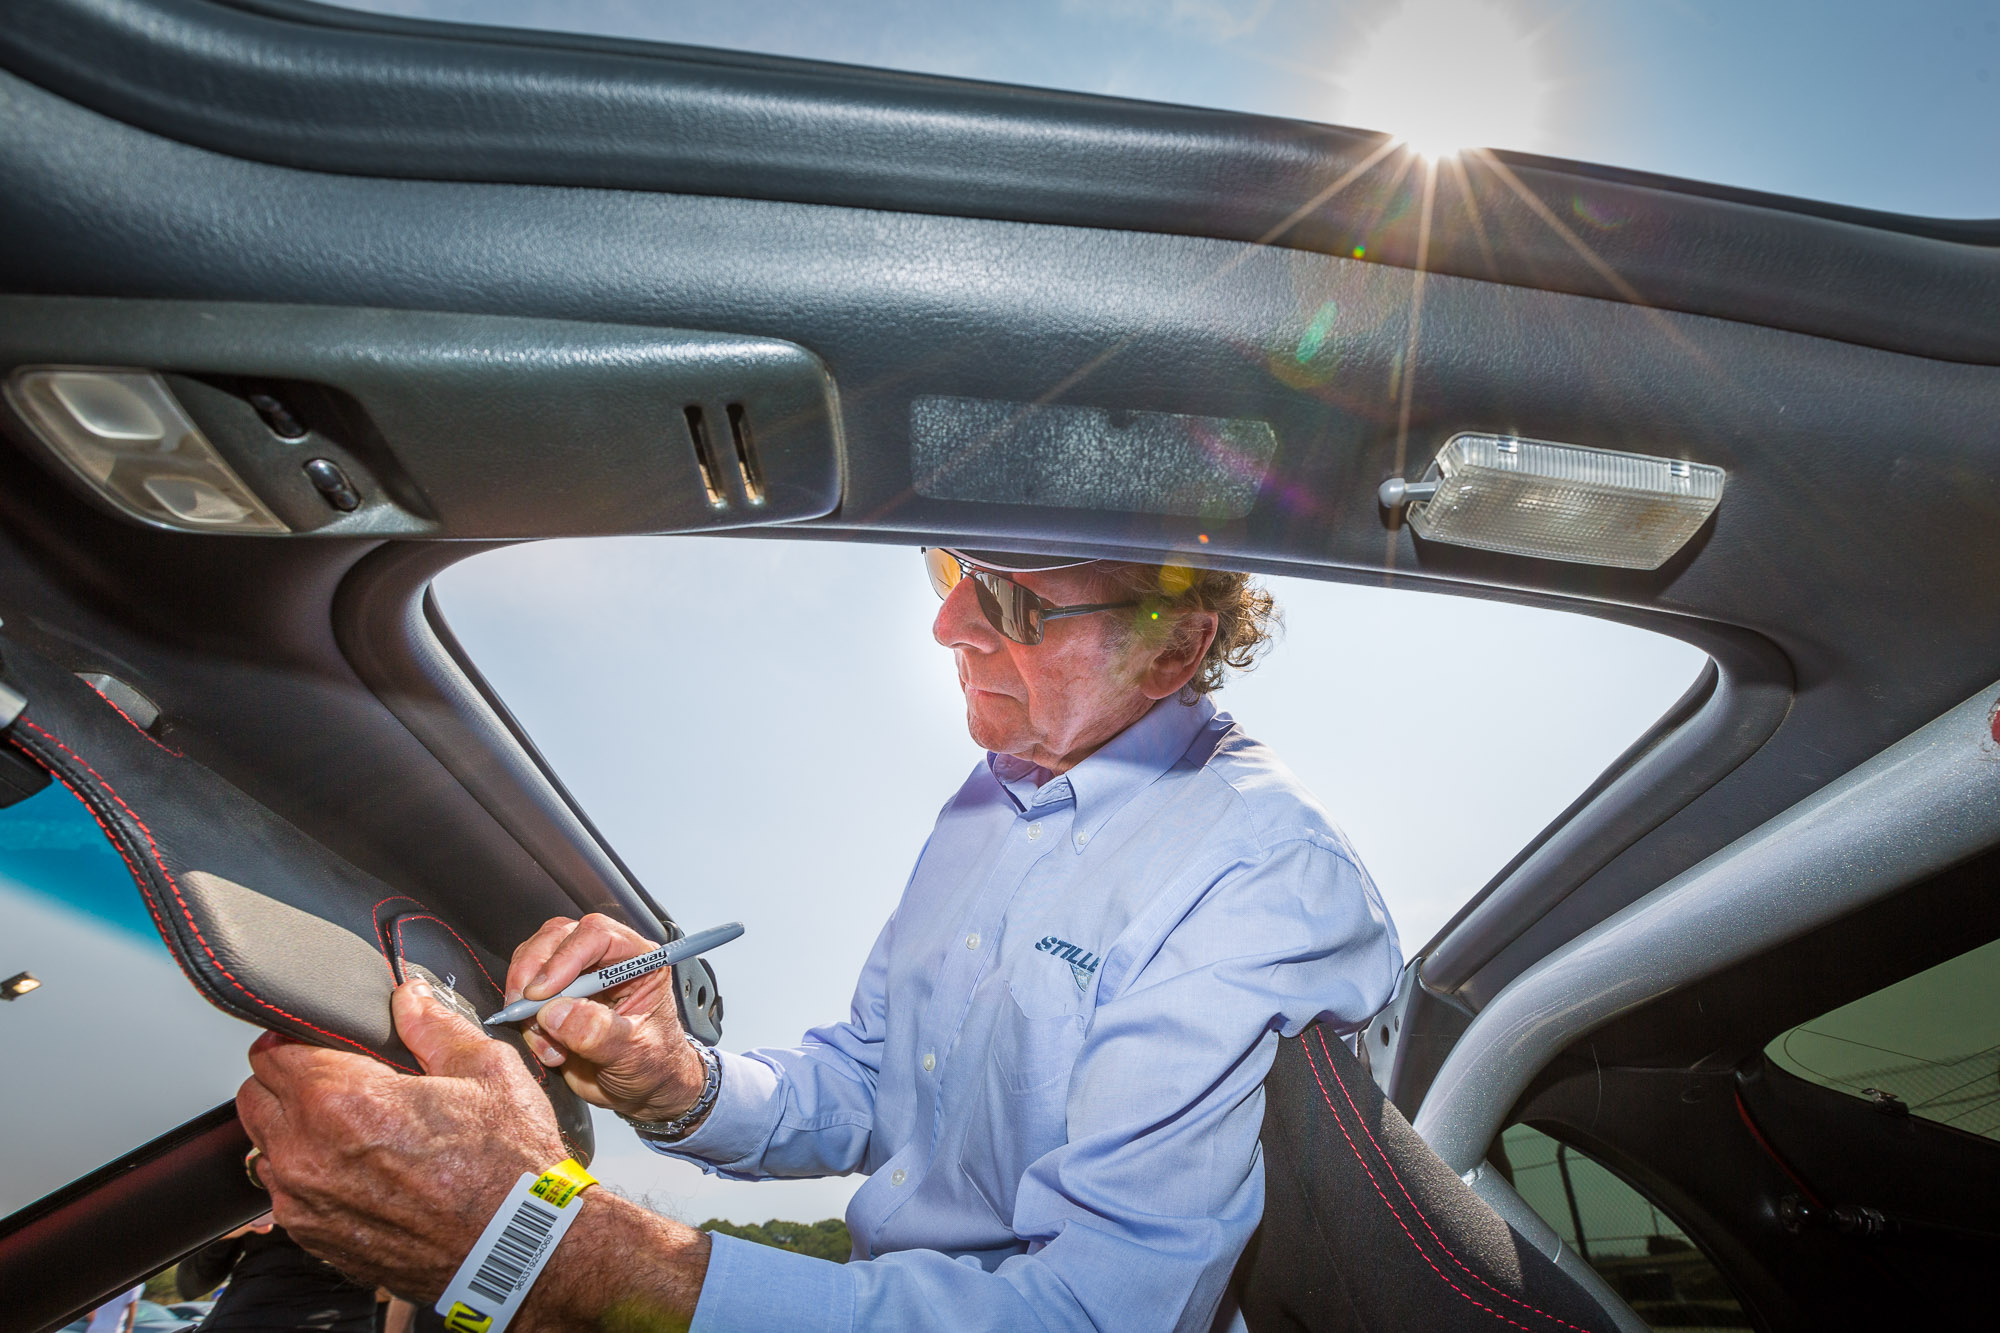 Nissan racing legend Steve Millen autographs a fan's vehicle at The Rolex Monterey Motorsports Reunion, where Nissan is the featured marque, on Saturday, Aug. 25, 2018, in Salinas, Calif. (Eric Kayne/AP Images for Nissan)